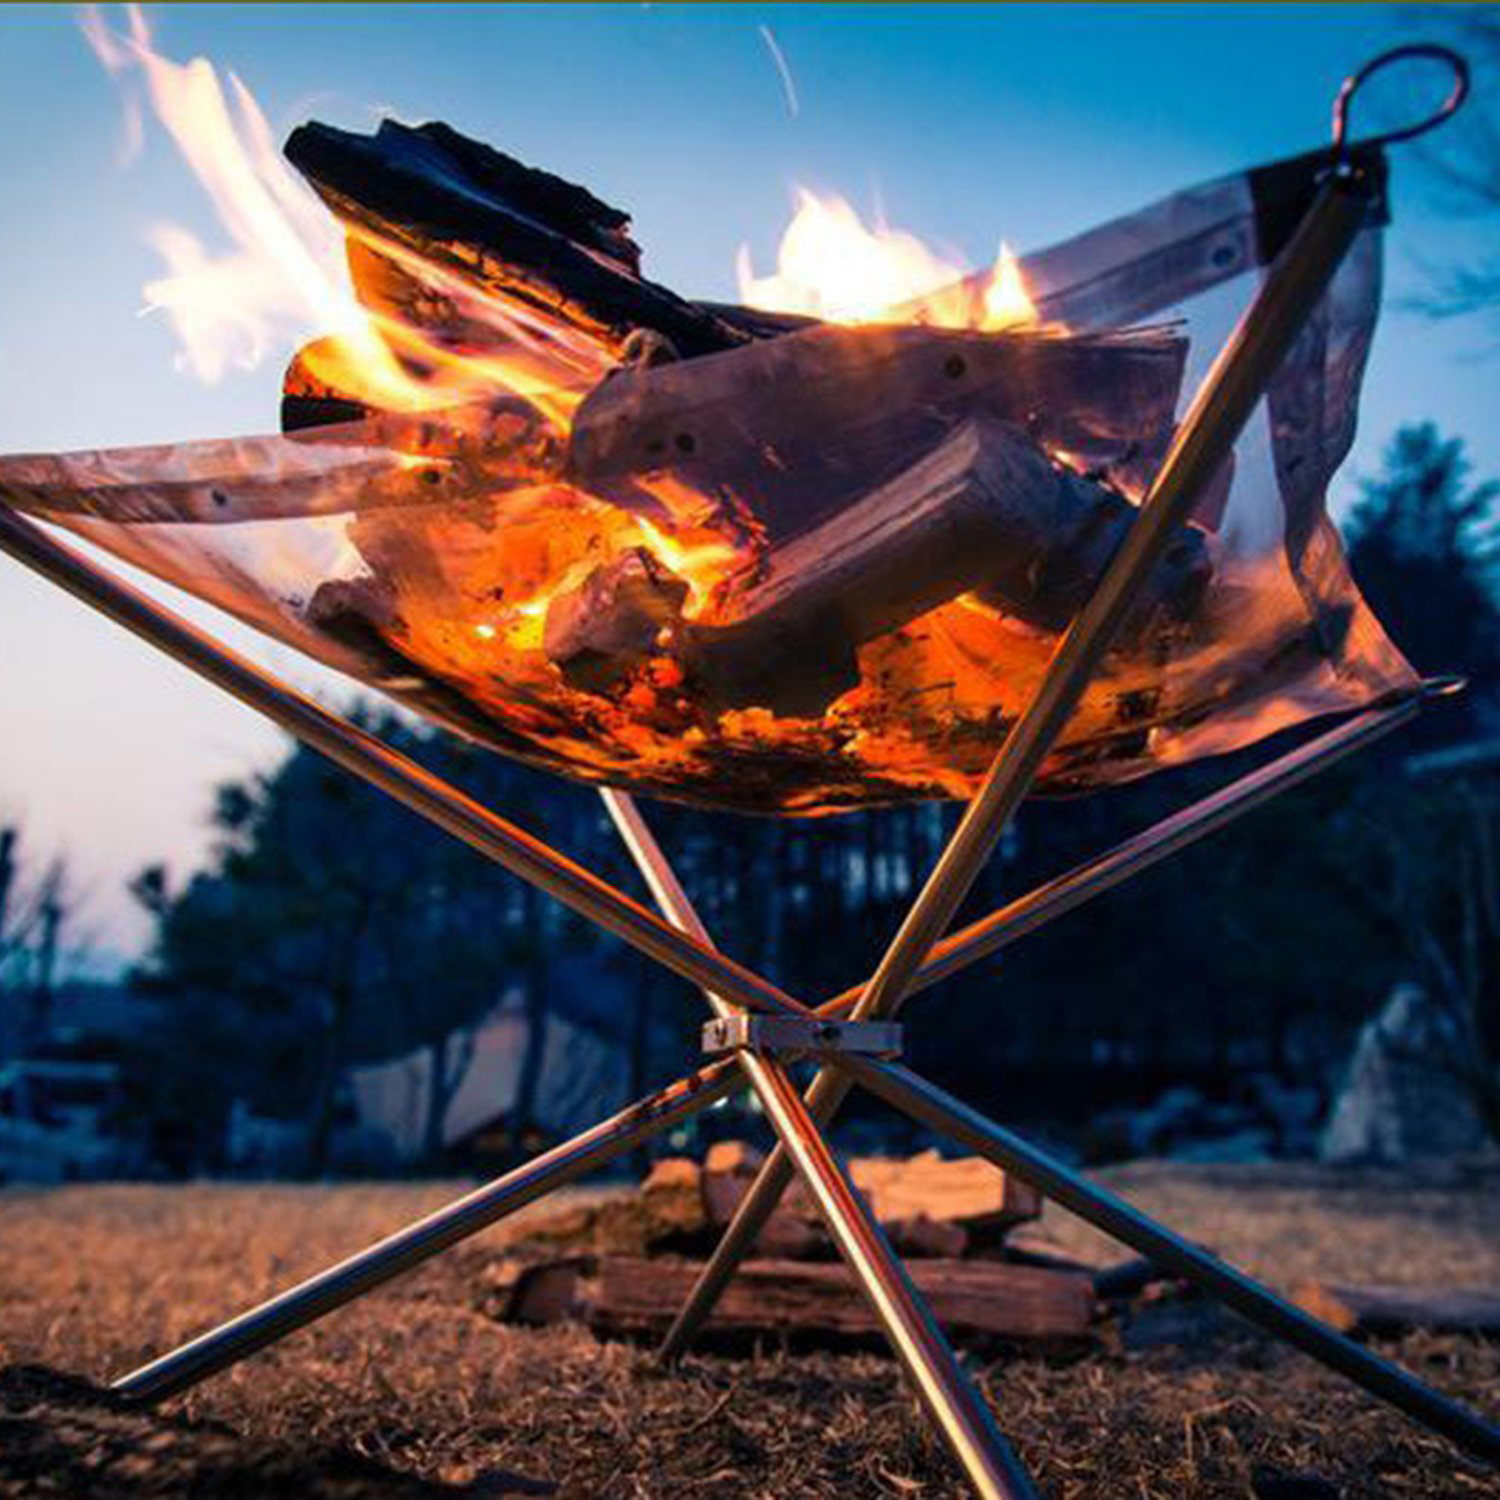 Portable Outdoor Fire Pit Collapsible Steel Mesh Fireplace Foldable For Camping